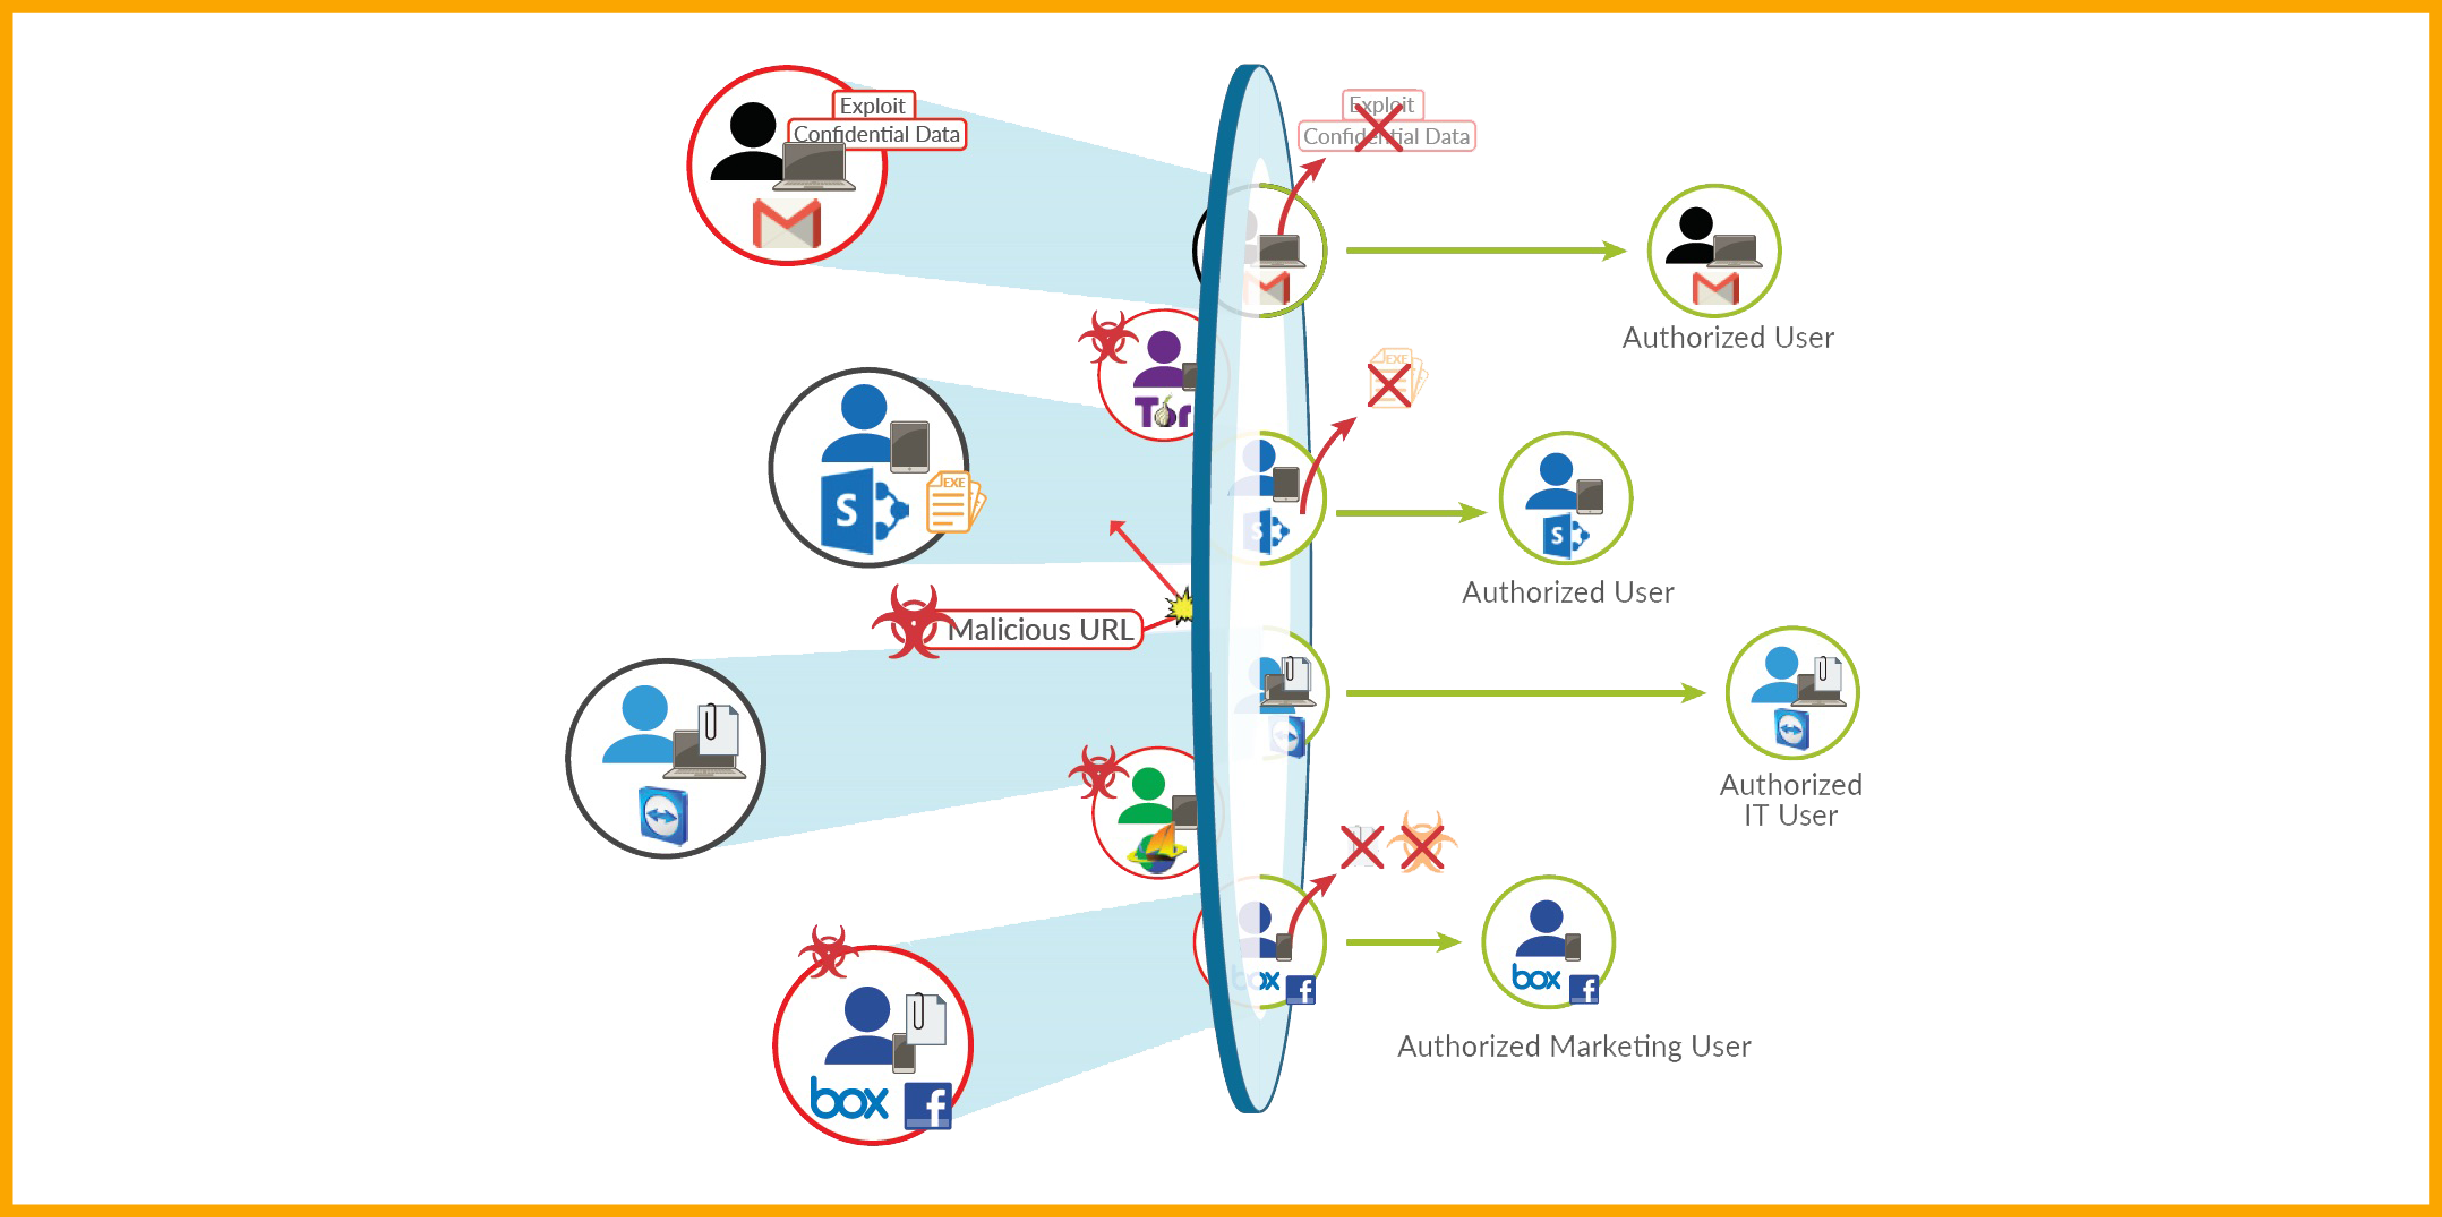 firewall-features-overview-under-control-01-1.png